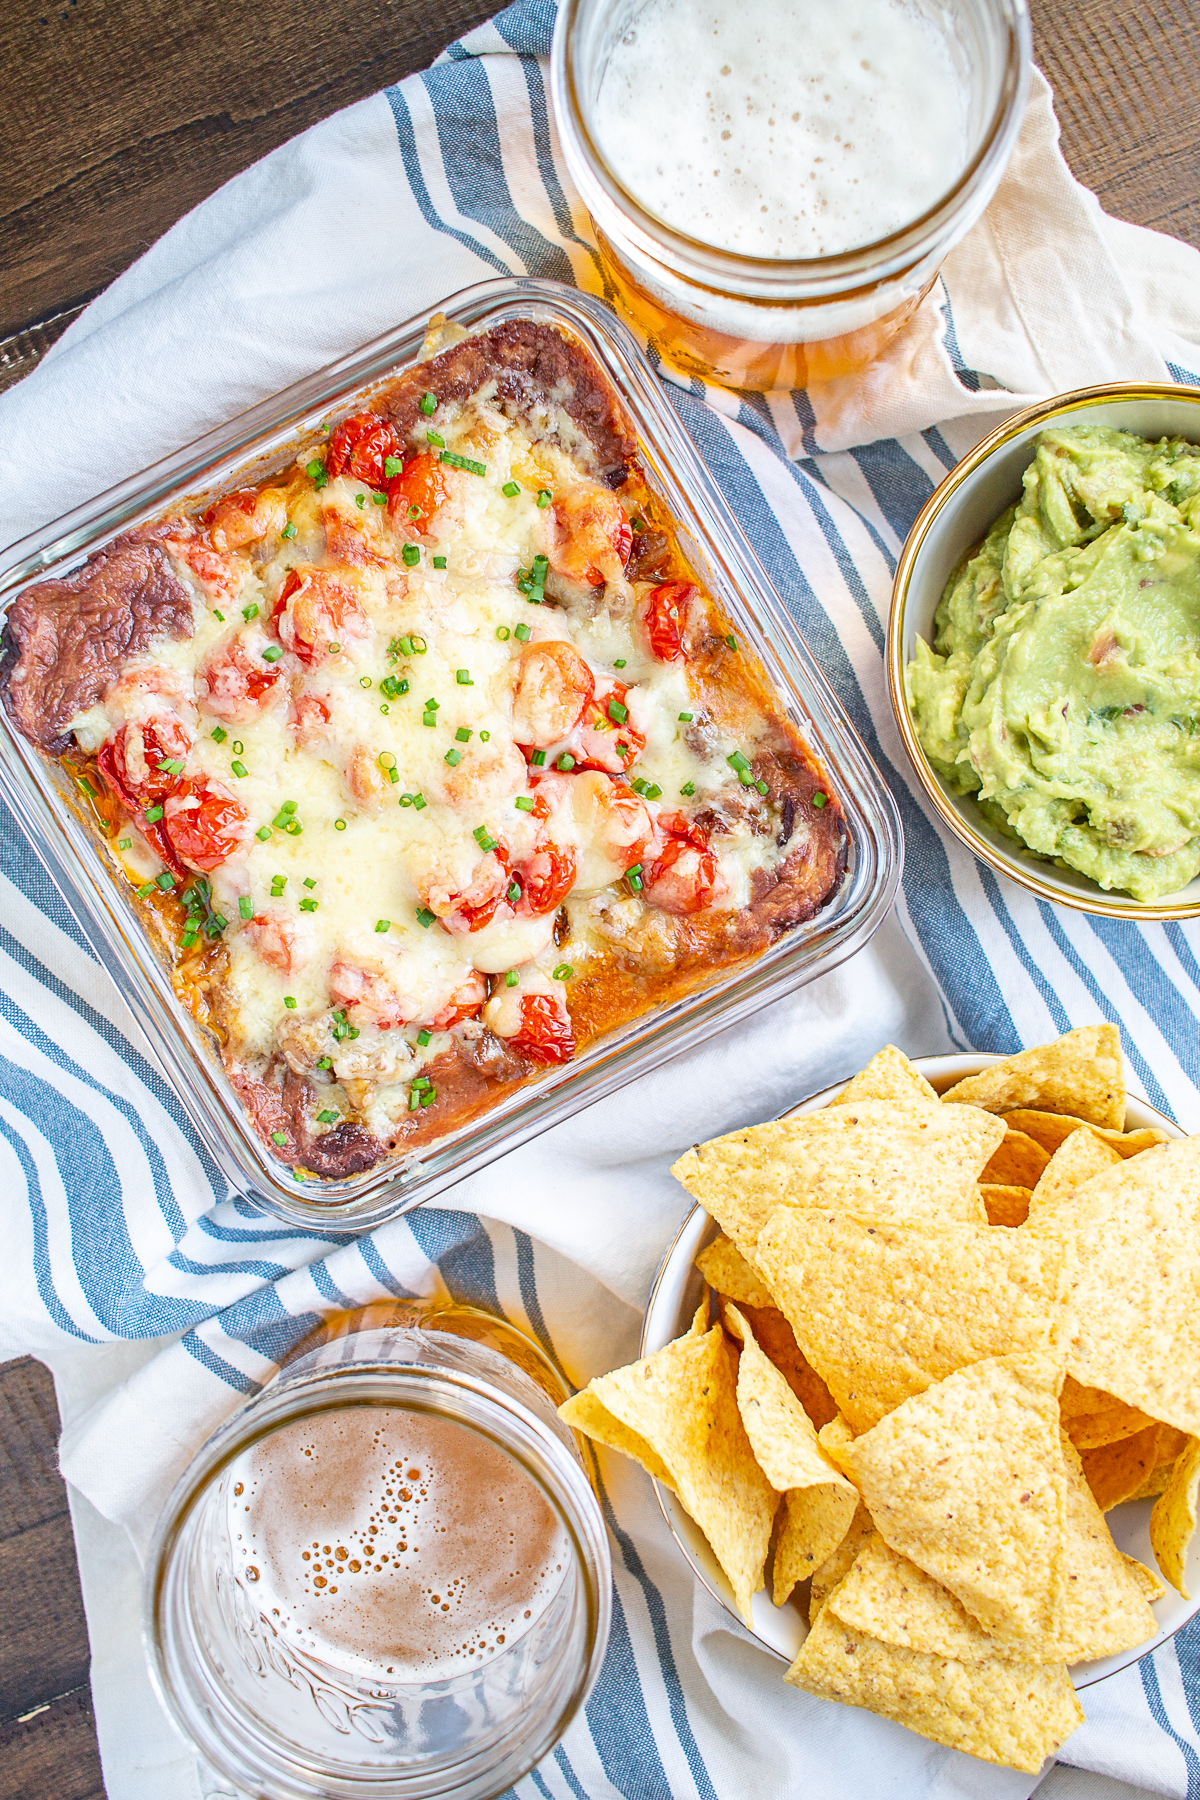 Baked Taco Dip A Hot Taco Dip With Ground Beef